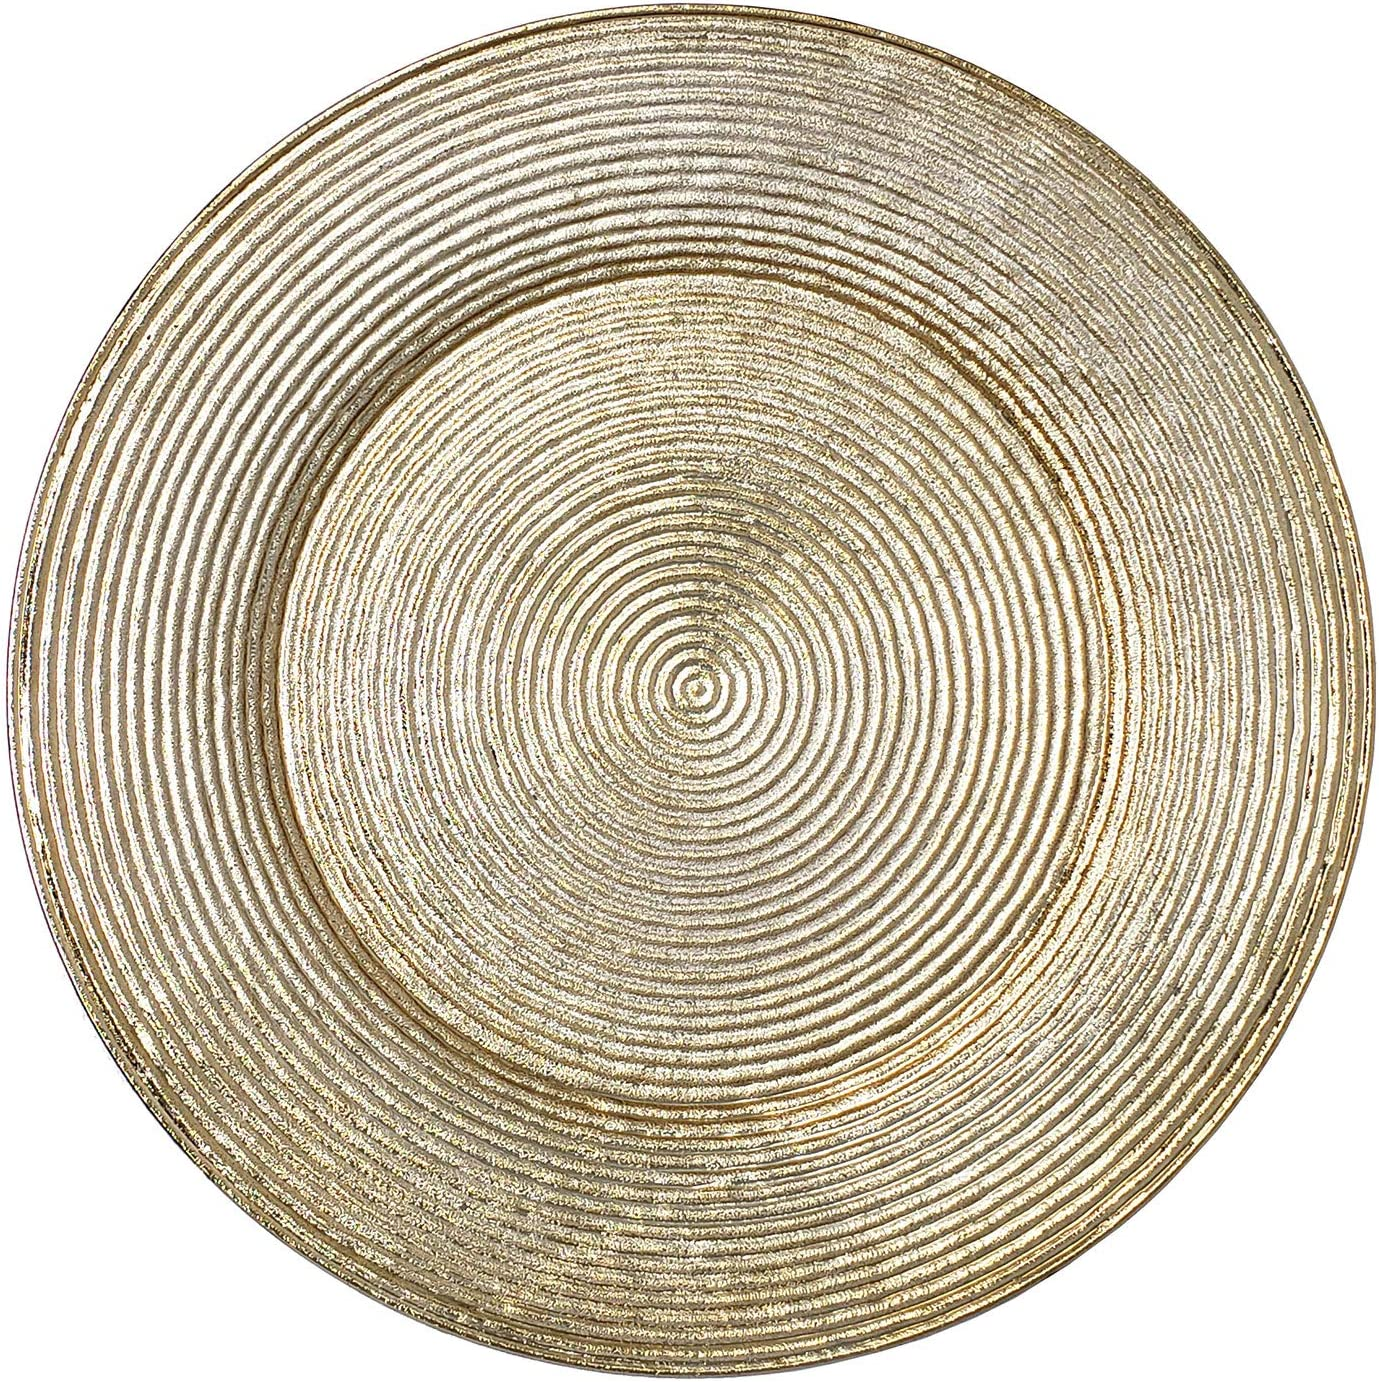 Lovely Christmas Dinnerware Formal 13-Inch Charger Spiral Dallas Latest item Mall Round